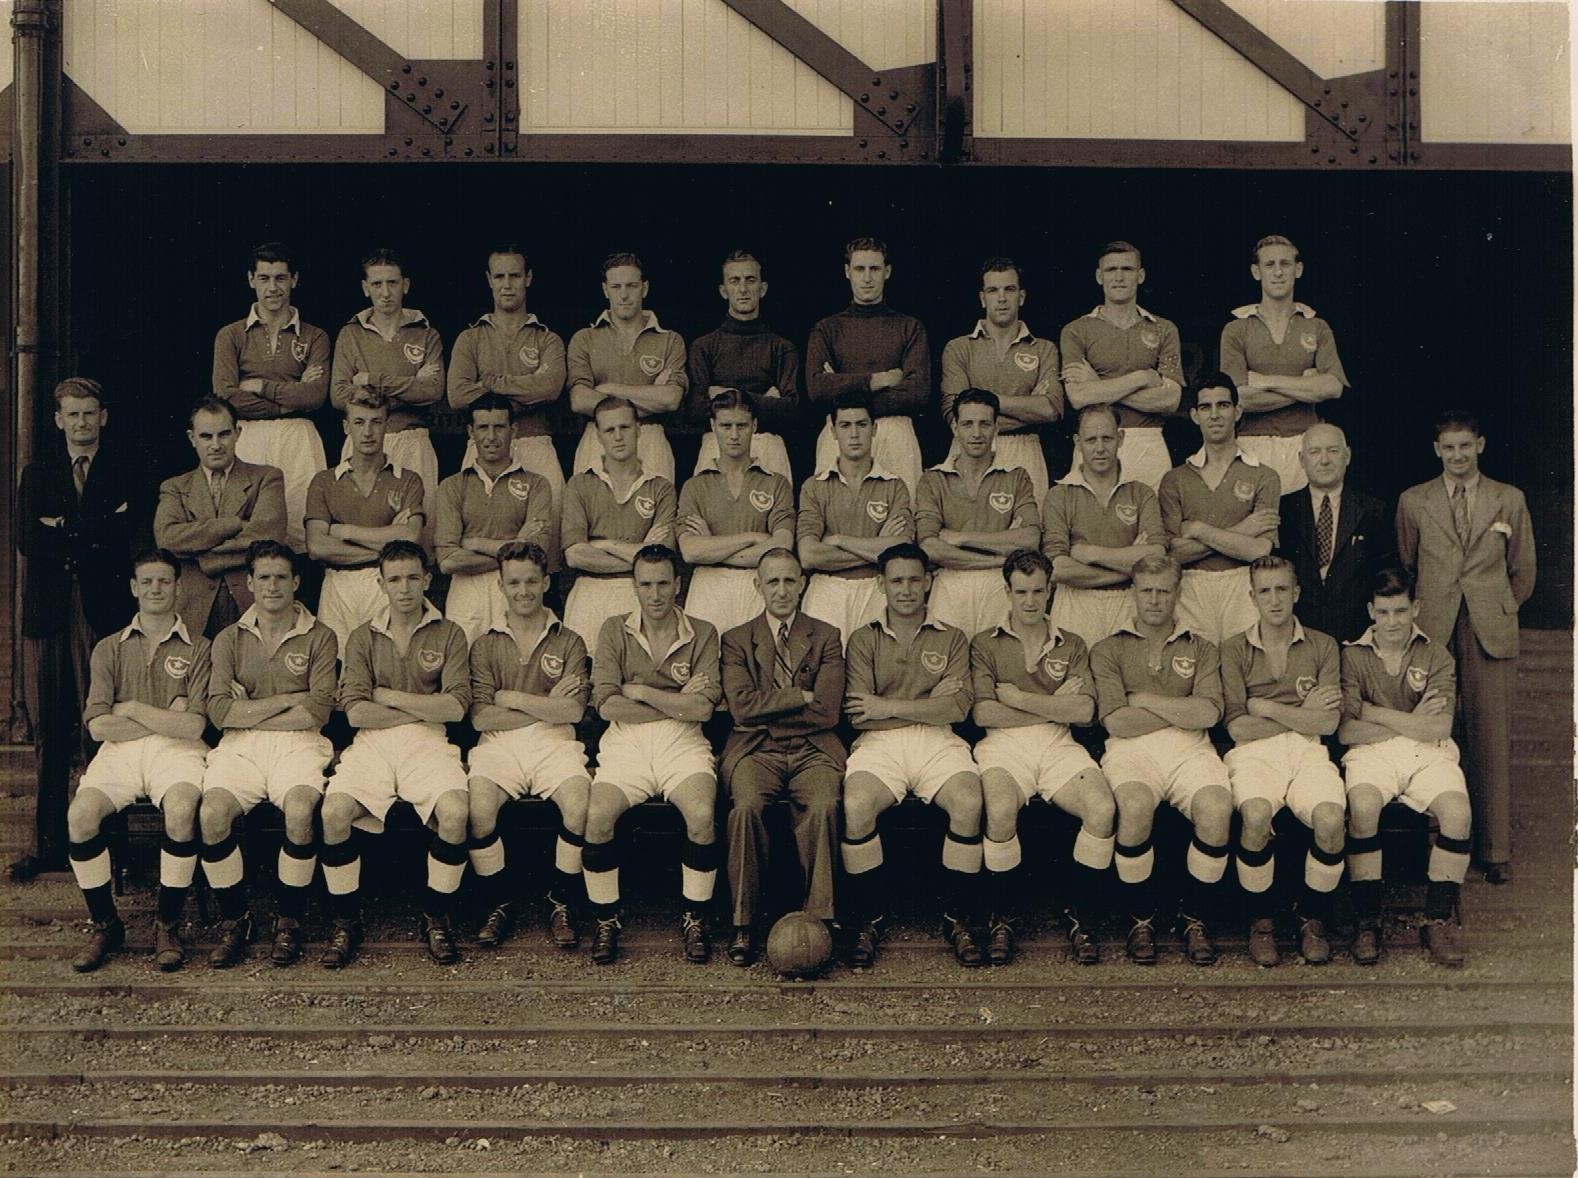 """Portsmouth's """"Golden Jubilee"""" season has finally arrived. Don't forget you'll be able to follow its progress right here. We'll be bringing you all the news """"as live"""" from on the pitch and behind the scenes. Just look for #OTD1948 and #PompeyChampsOfEngland https://t.co/gY7pH1bNDO"""